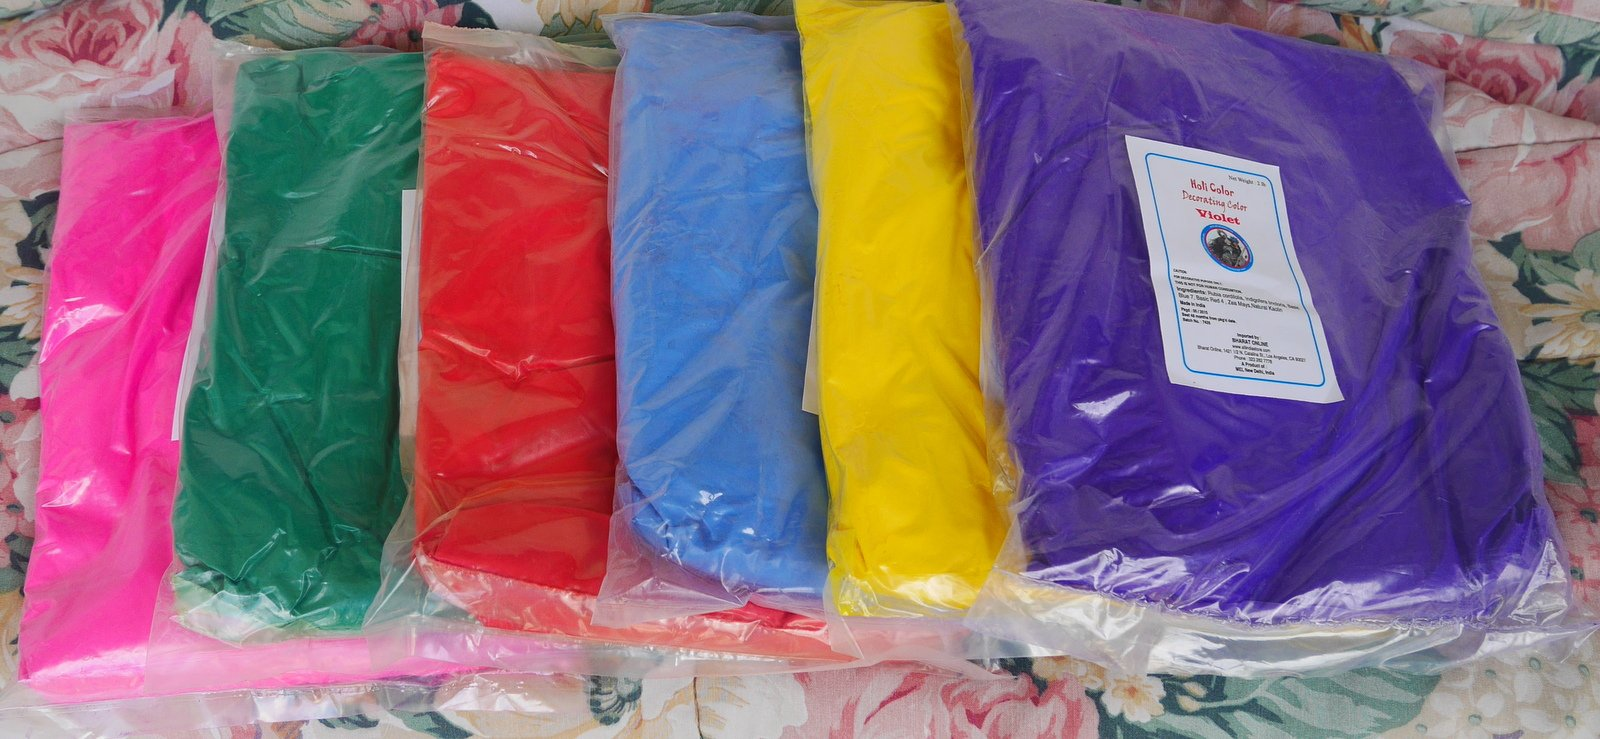 HOLI Colors powder for Carnival 12 Lbs 6 colors (2lbs ea color) RED, YELLOW, PINK, BLUE, GREEN, AND PURPLE - SHIPS FROM LOS ANGELES SAME DAY OF PURCHASE -Ingredients : Zea Nays, Indigoferra Tinctoria, Natural Kaolin, and basic color